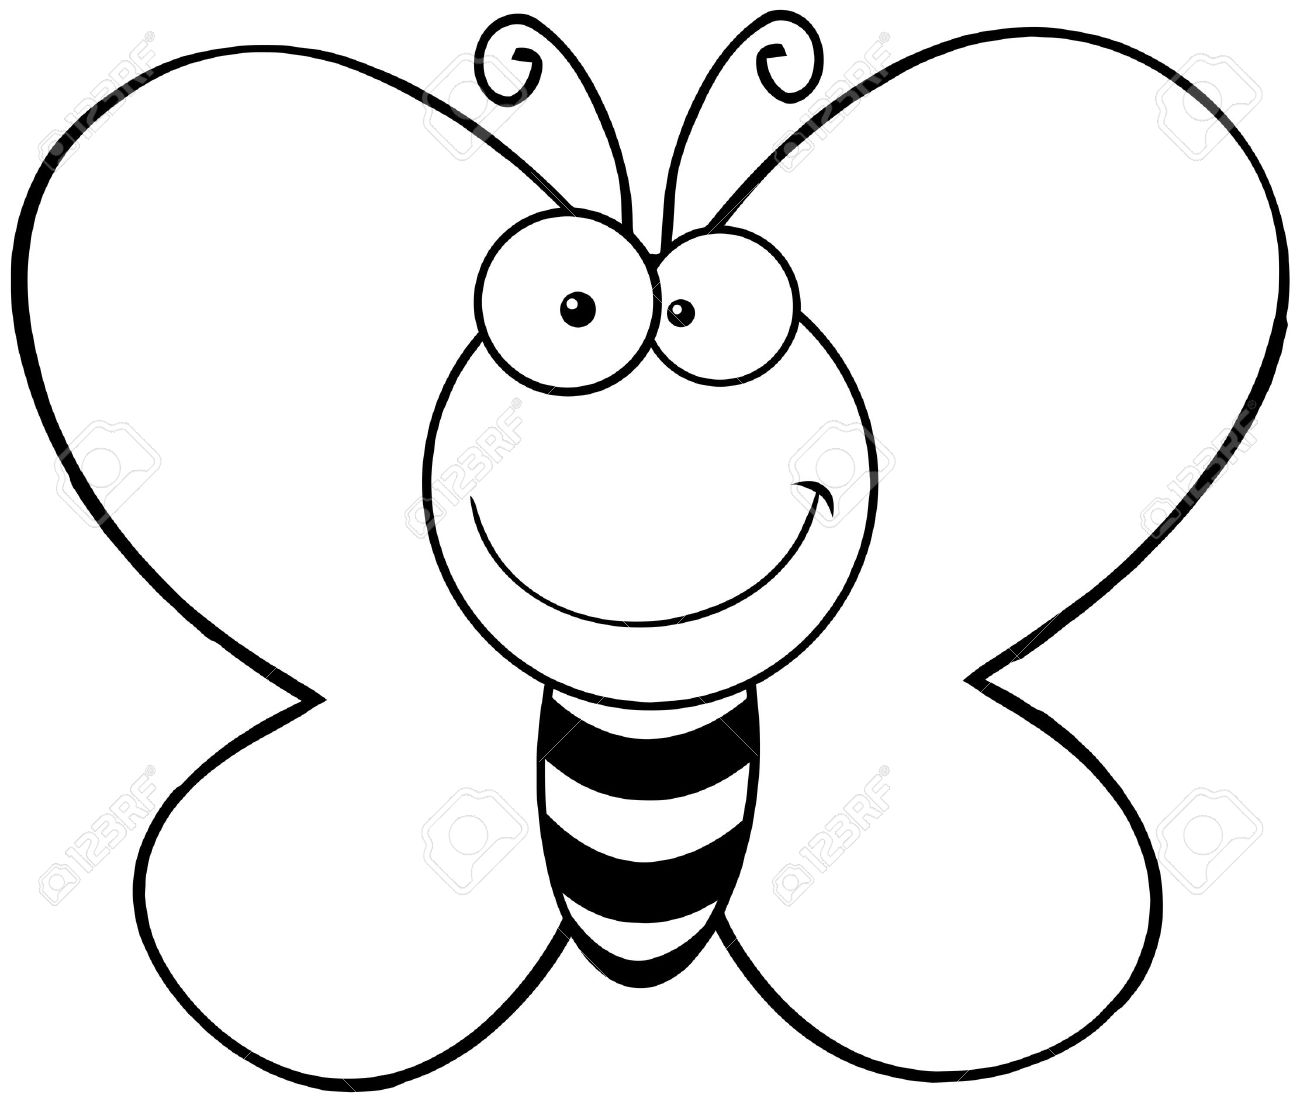 1300x1102 Outlined Smiling Butterfly Cartoon Mascot Character Royalty Free